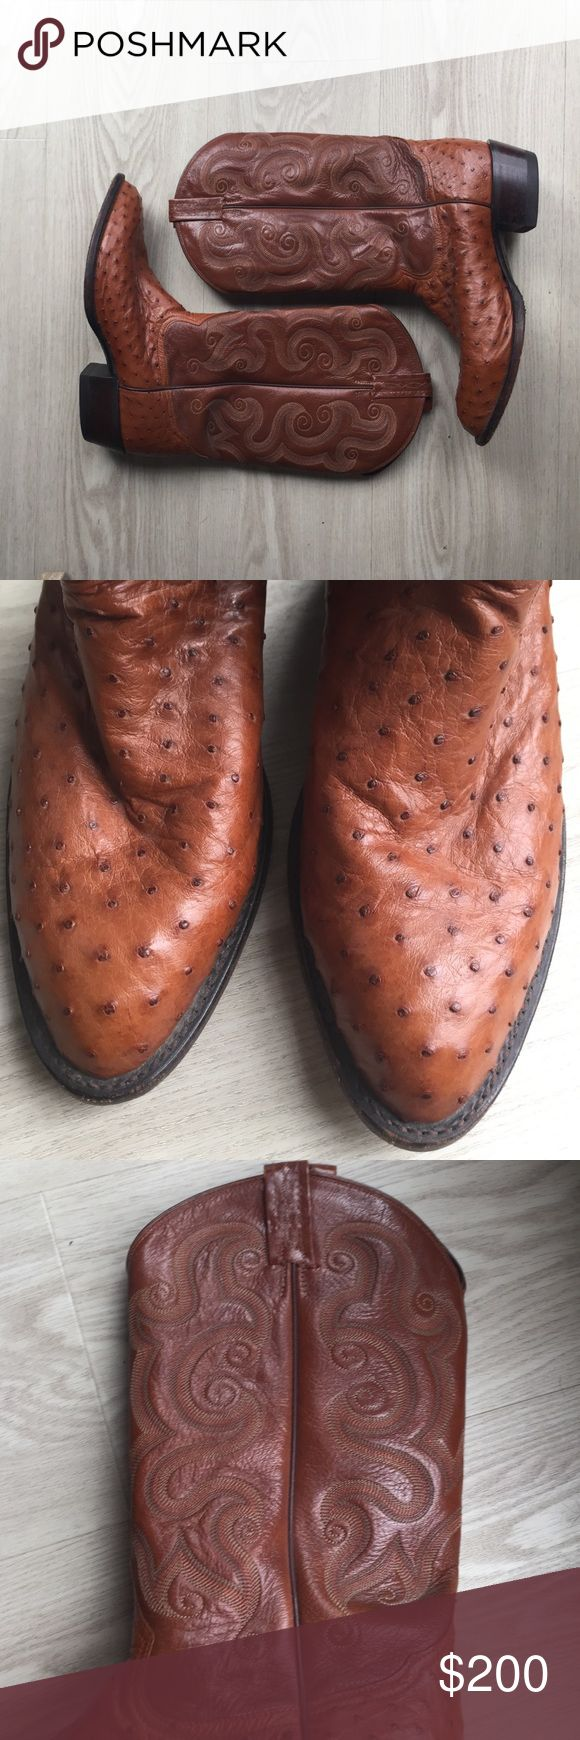 Authentic Tony Lama cowboy boots for men, size 10 Authentic Tony Lama cowboy boots. Still in great condition. Ostrich skin. Typically retails for $480-$500 Tony Lama Shoes Cowboy & Western Boots